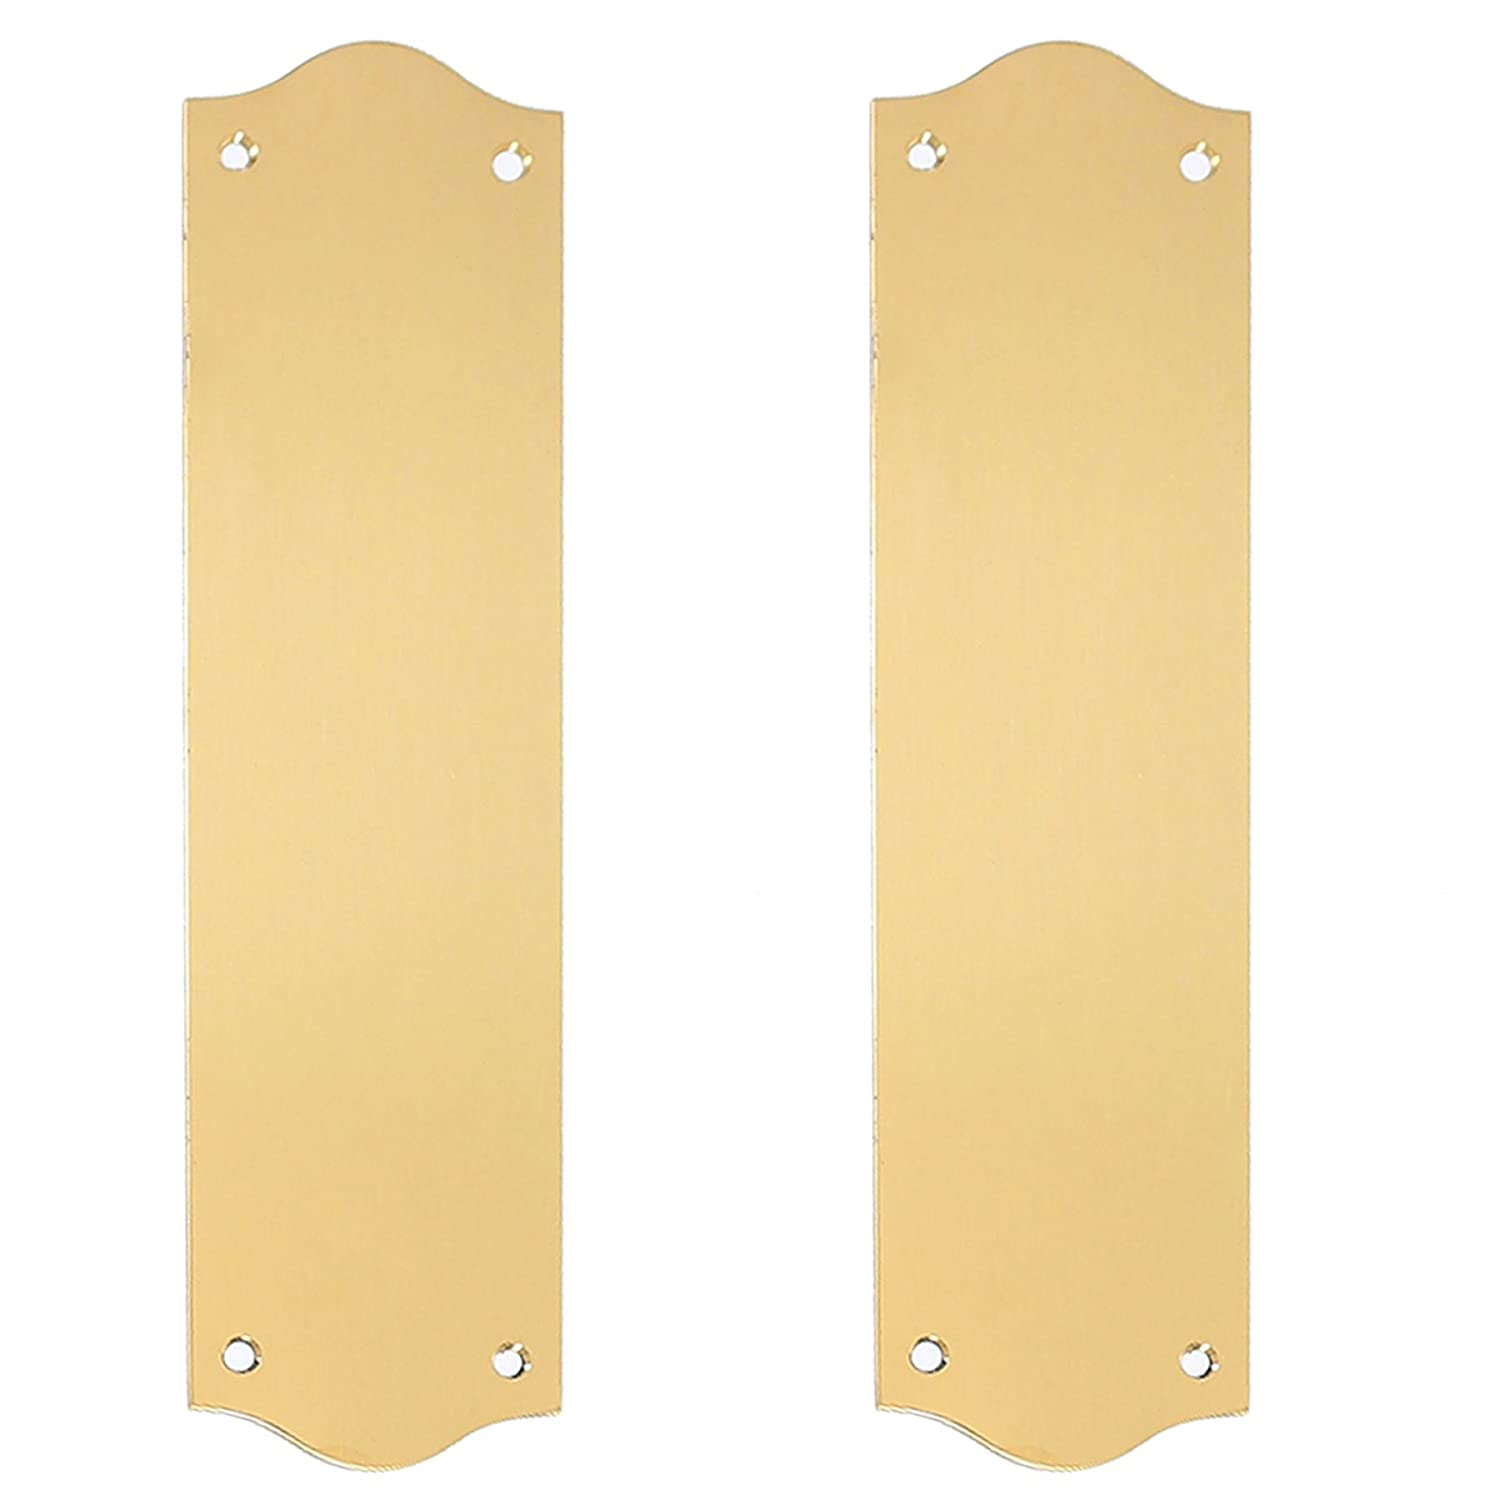 2x Polished Solid Brass Victorian Style Door Pushes - Regency Fingerplates White Hinge